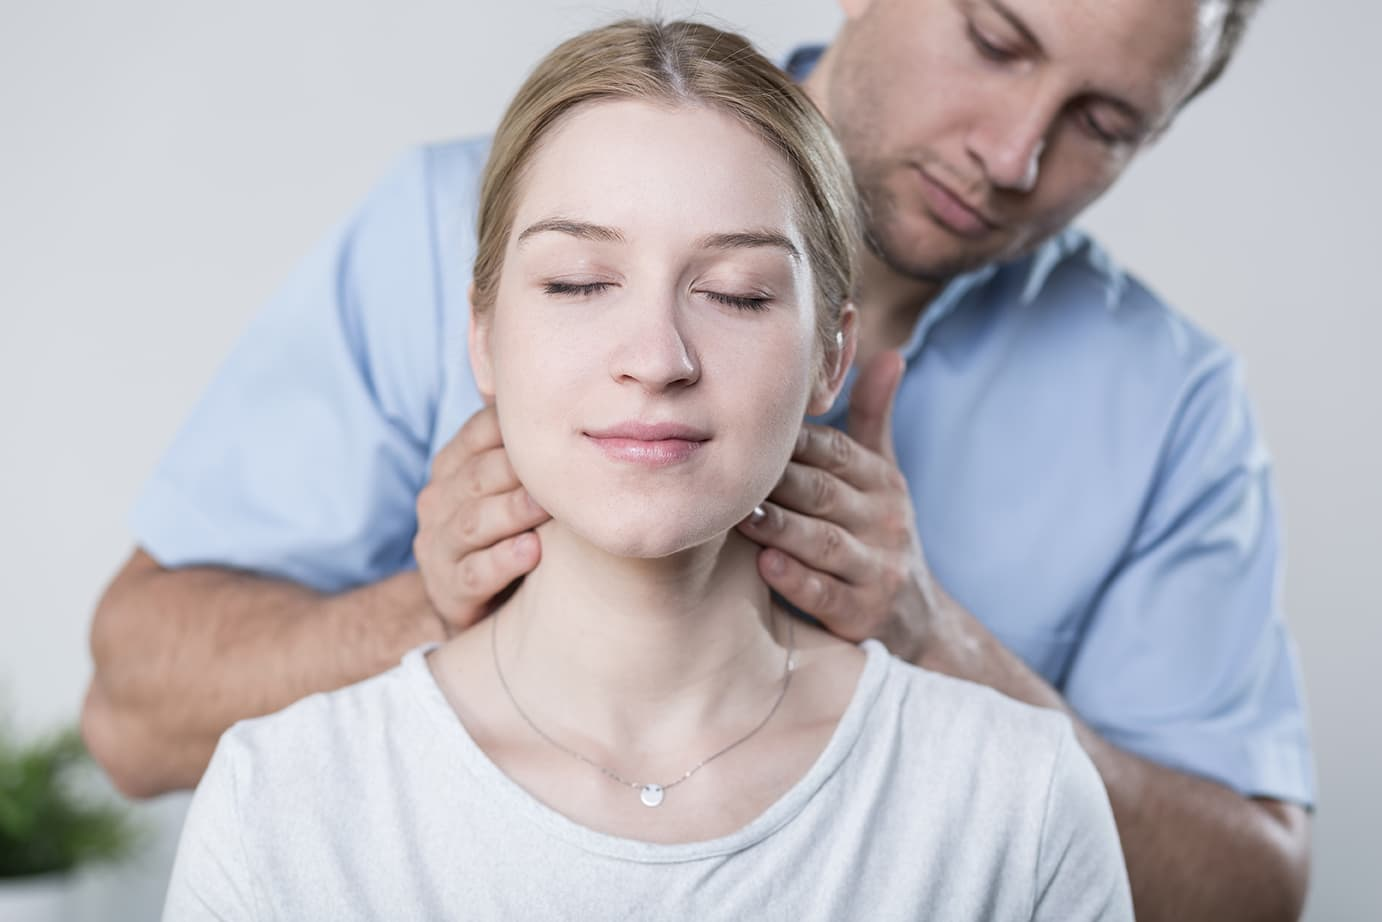 Chiropractic Doctor Adjustment